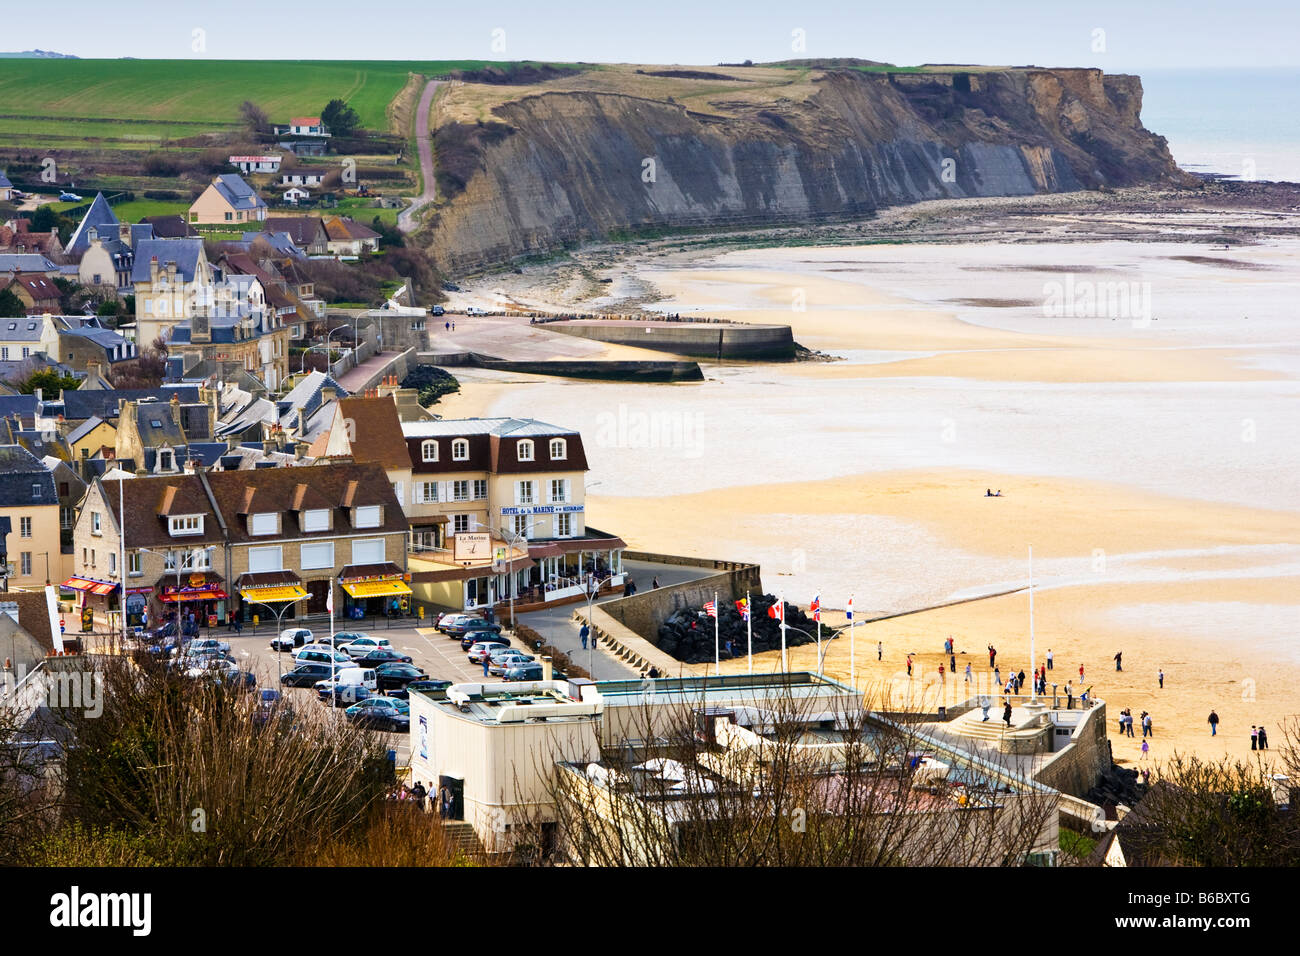 Arromanches Les Bains, Normandy, France on the WW2 Gold Beach - Stock Image